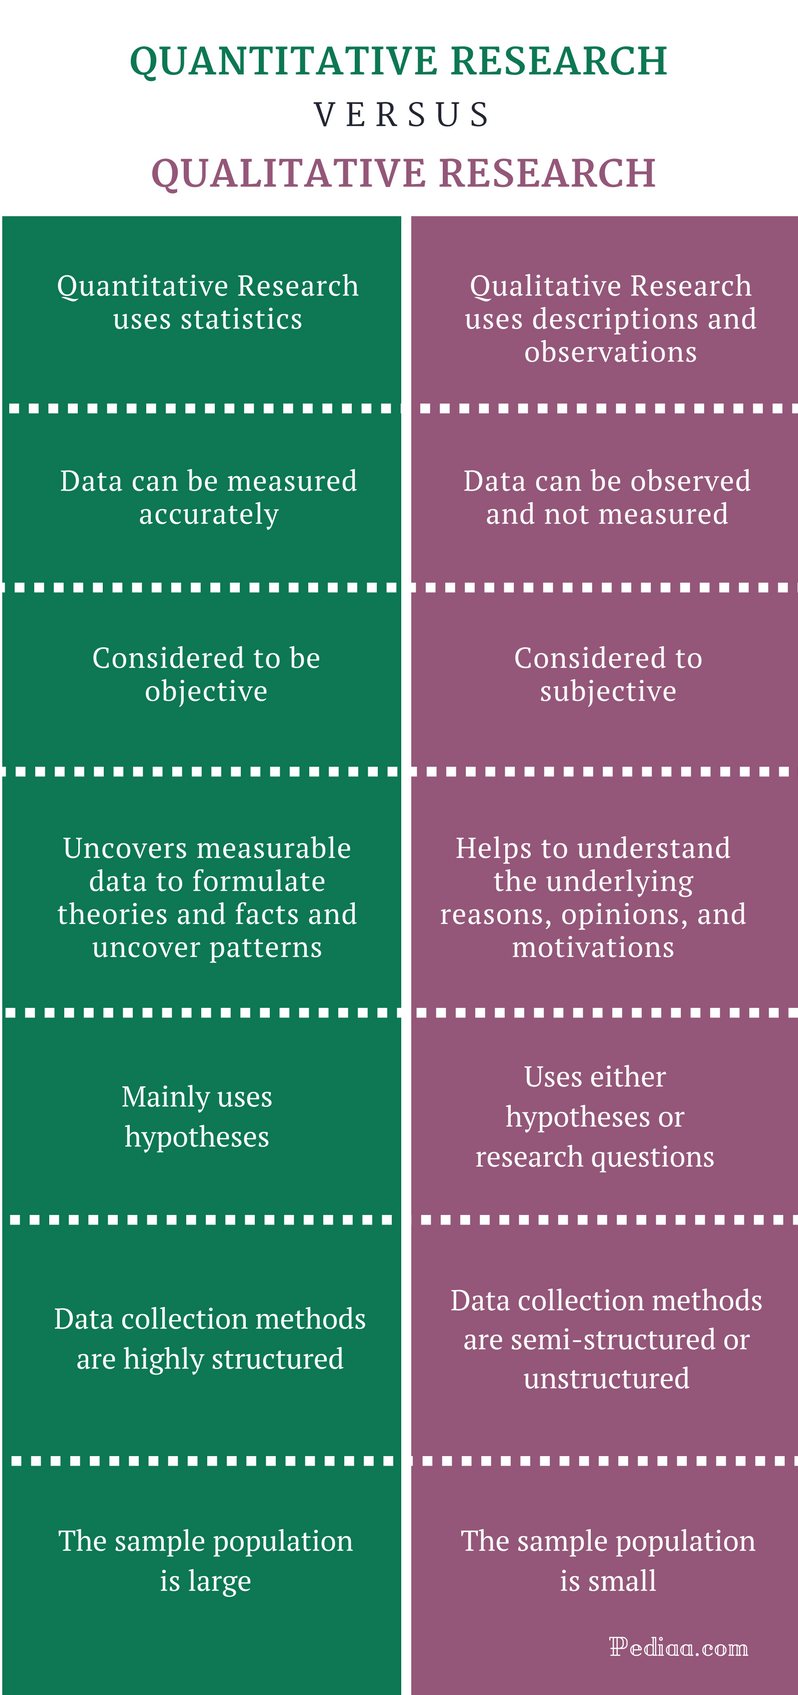 a comparison of qualitative data and quantitative data Compare and contrast qualitative and quantitative approaches to research this essay will compare and contrast the 3 articles below in relation to qualitative and quantitative approaches to research focusing on the design and methods used in each study including sampling, data collection and data analysis.